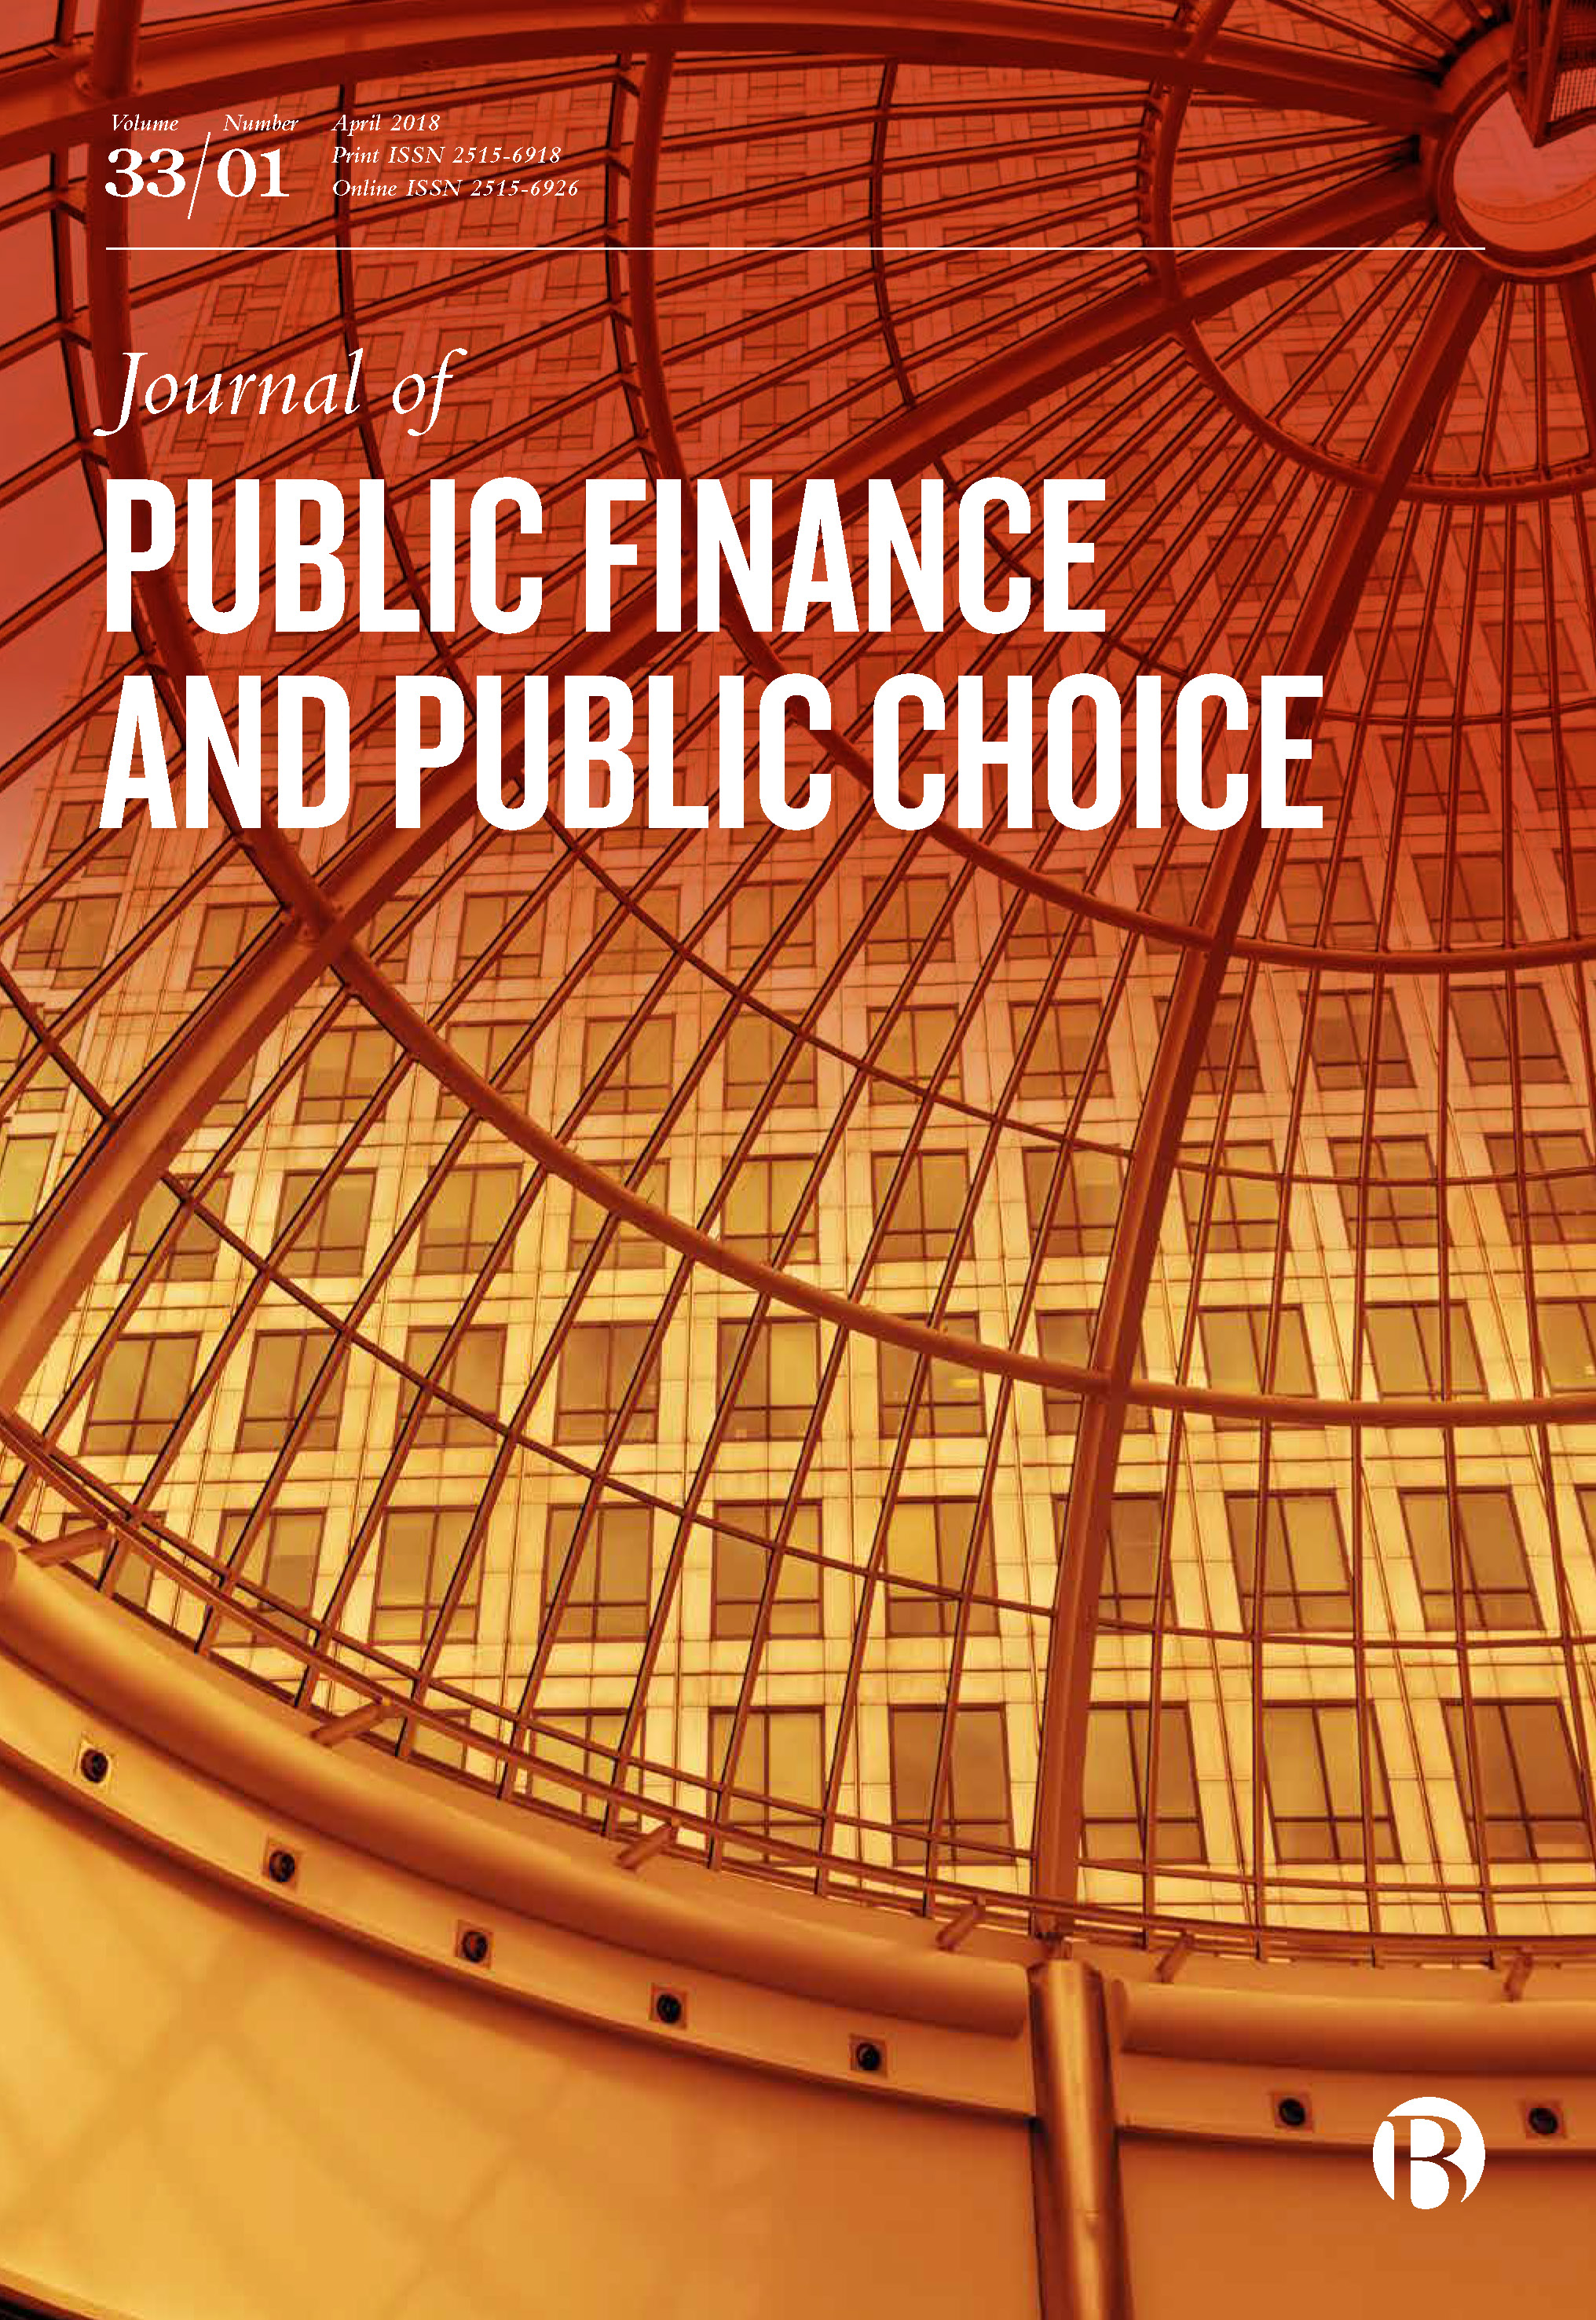 Journal of Public Finance and Public Choice